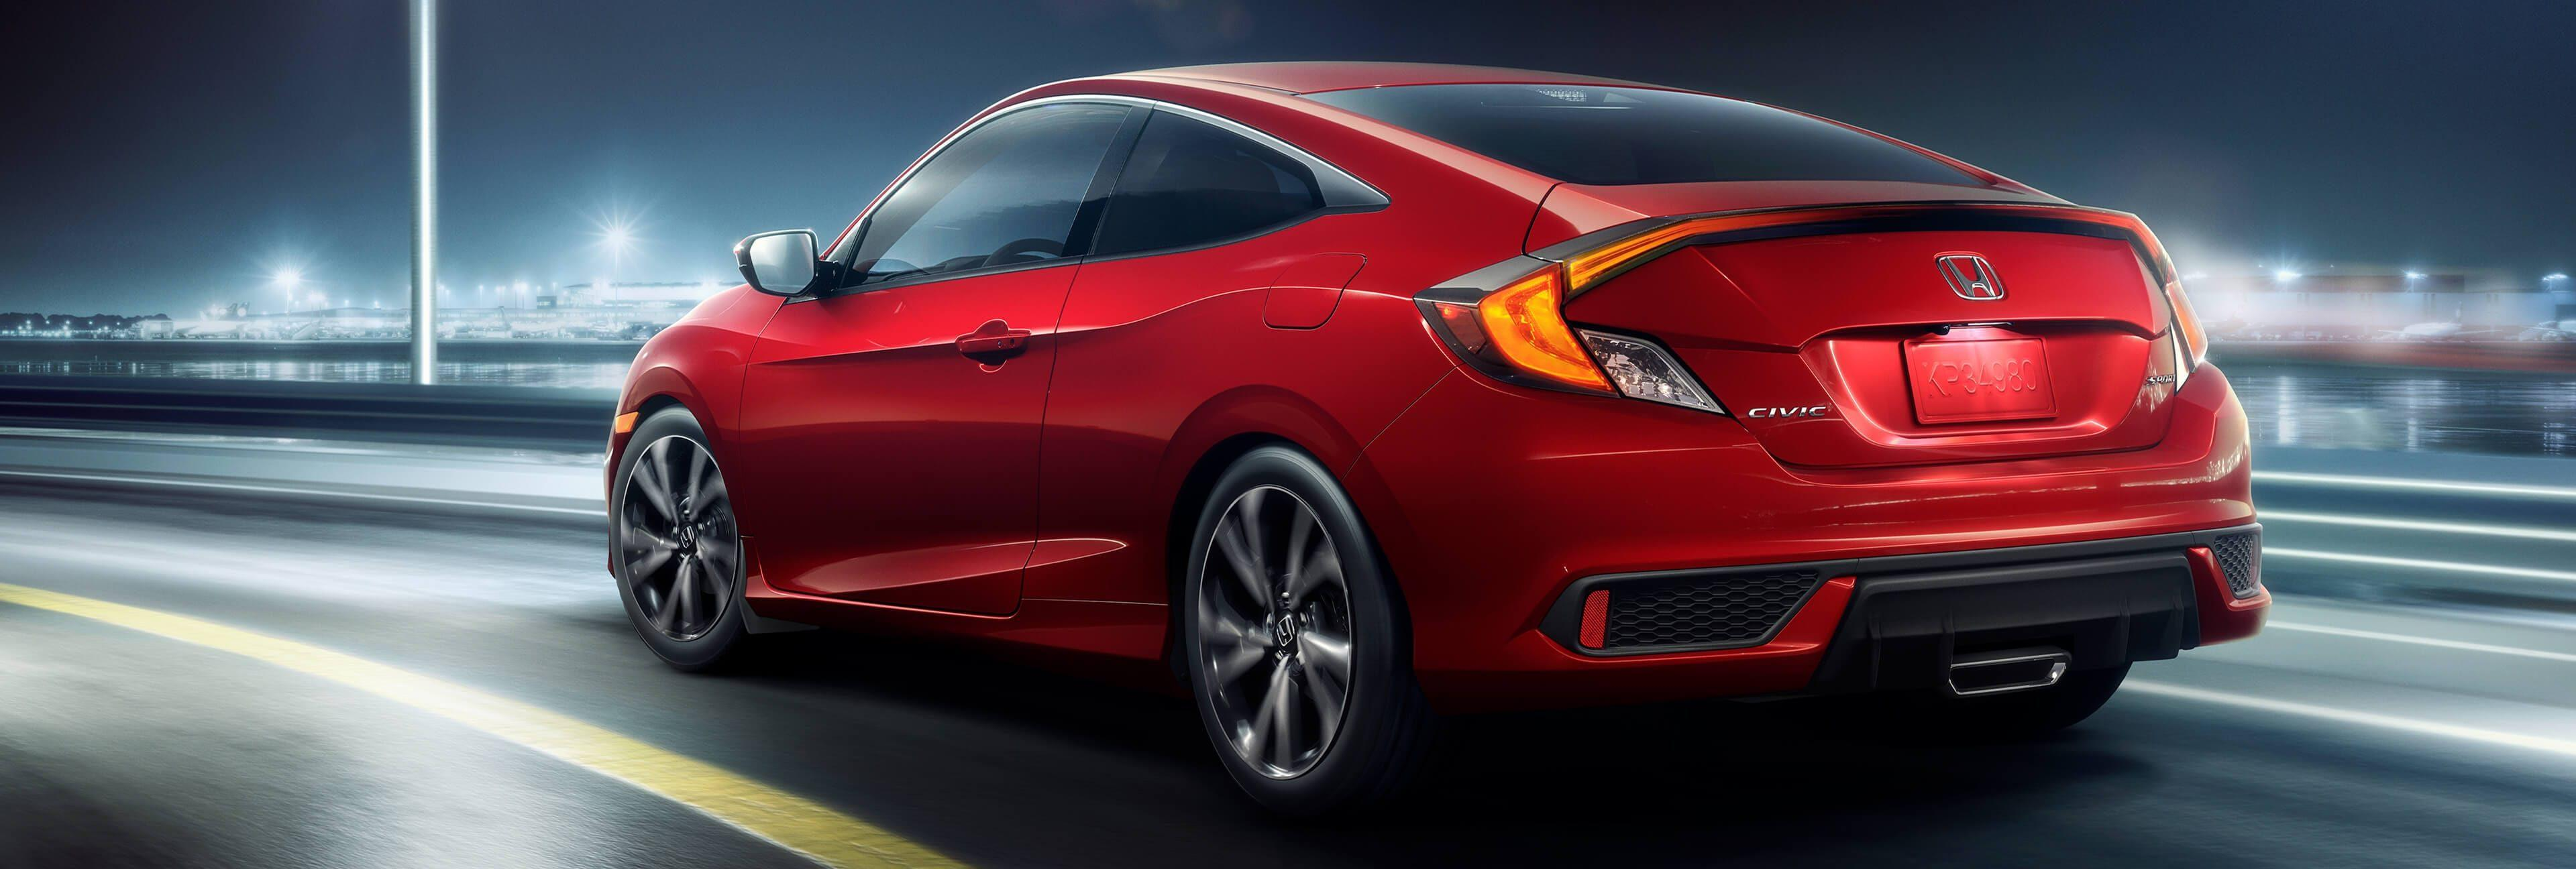 2020 Honda Civic Coupe Cambridge Centre Honda In On